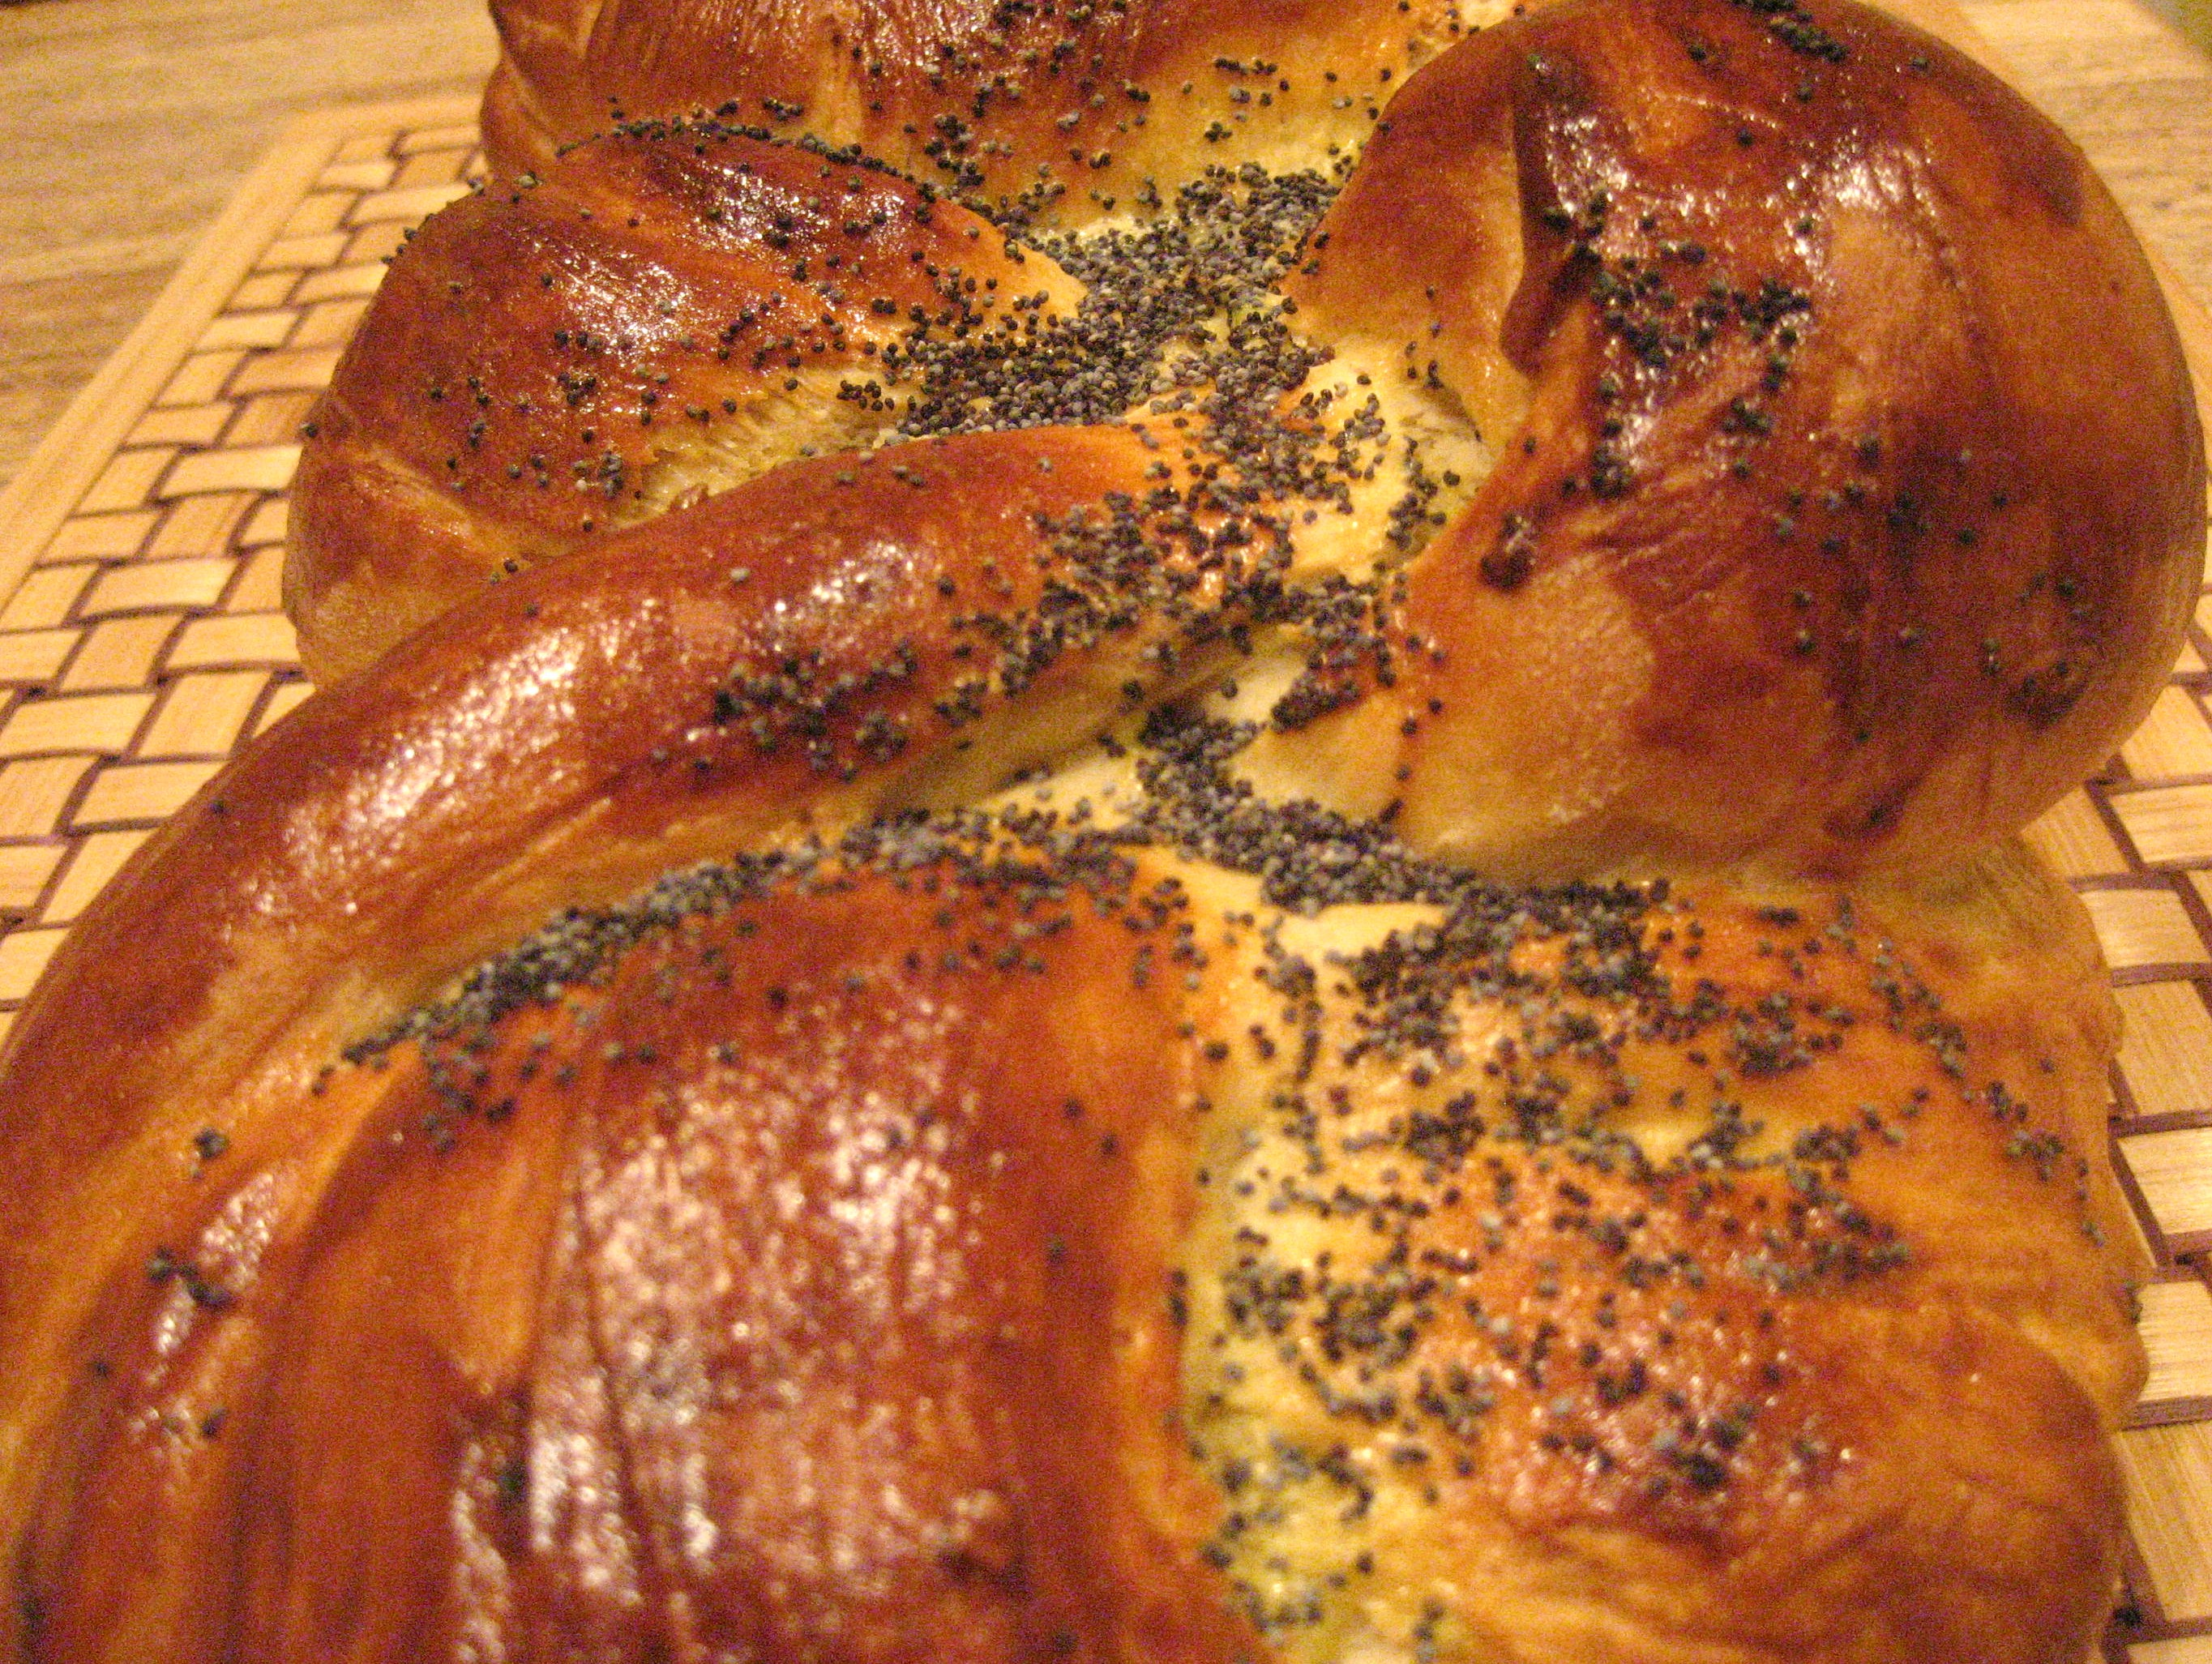 When I think of homemade challah, the words warm, rich, gold..